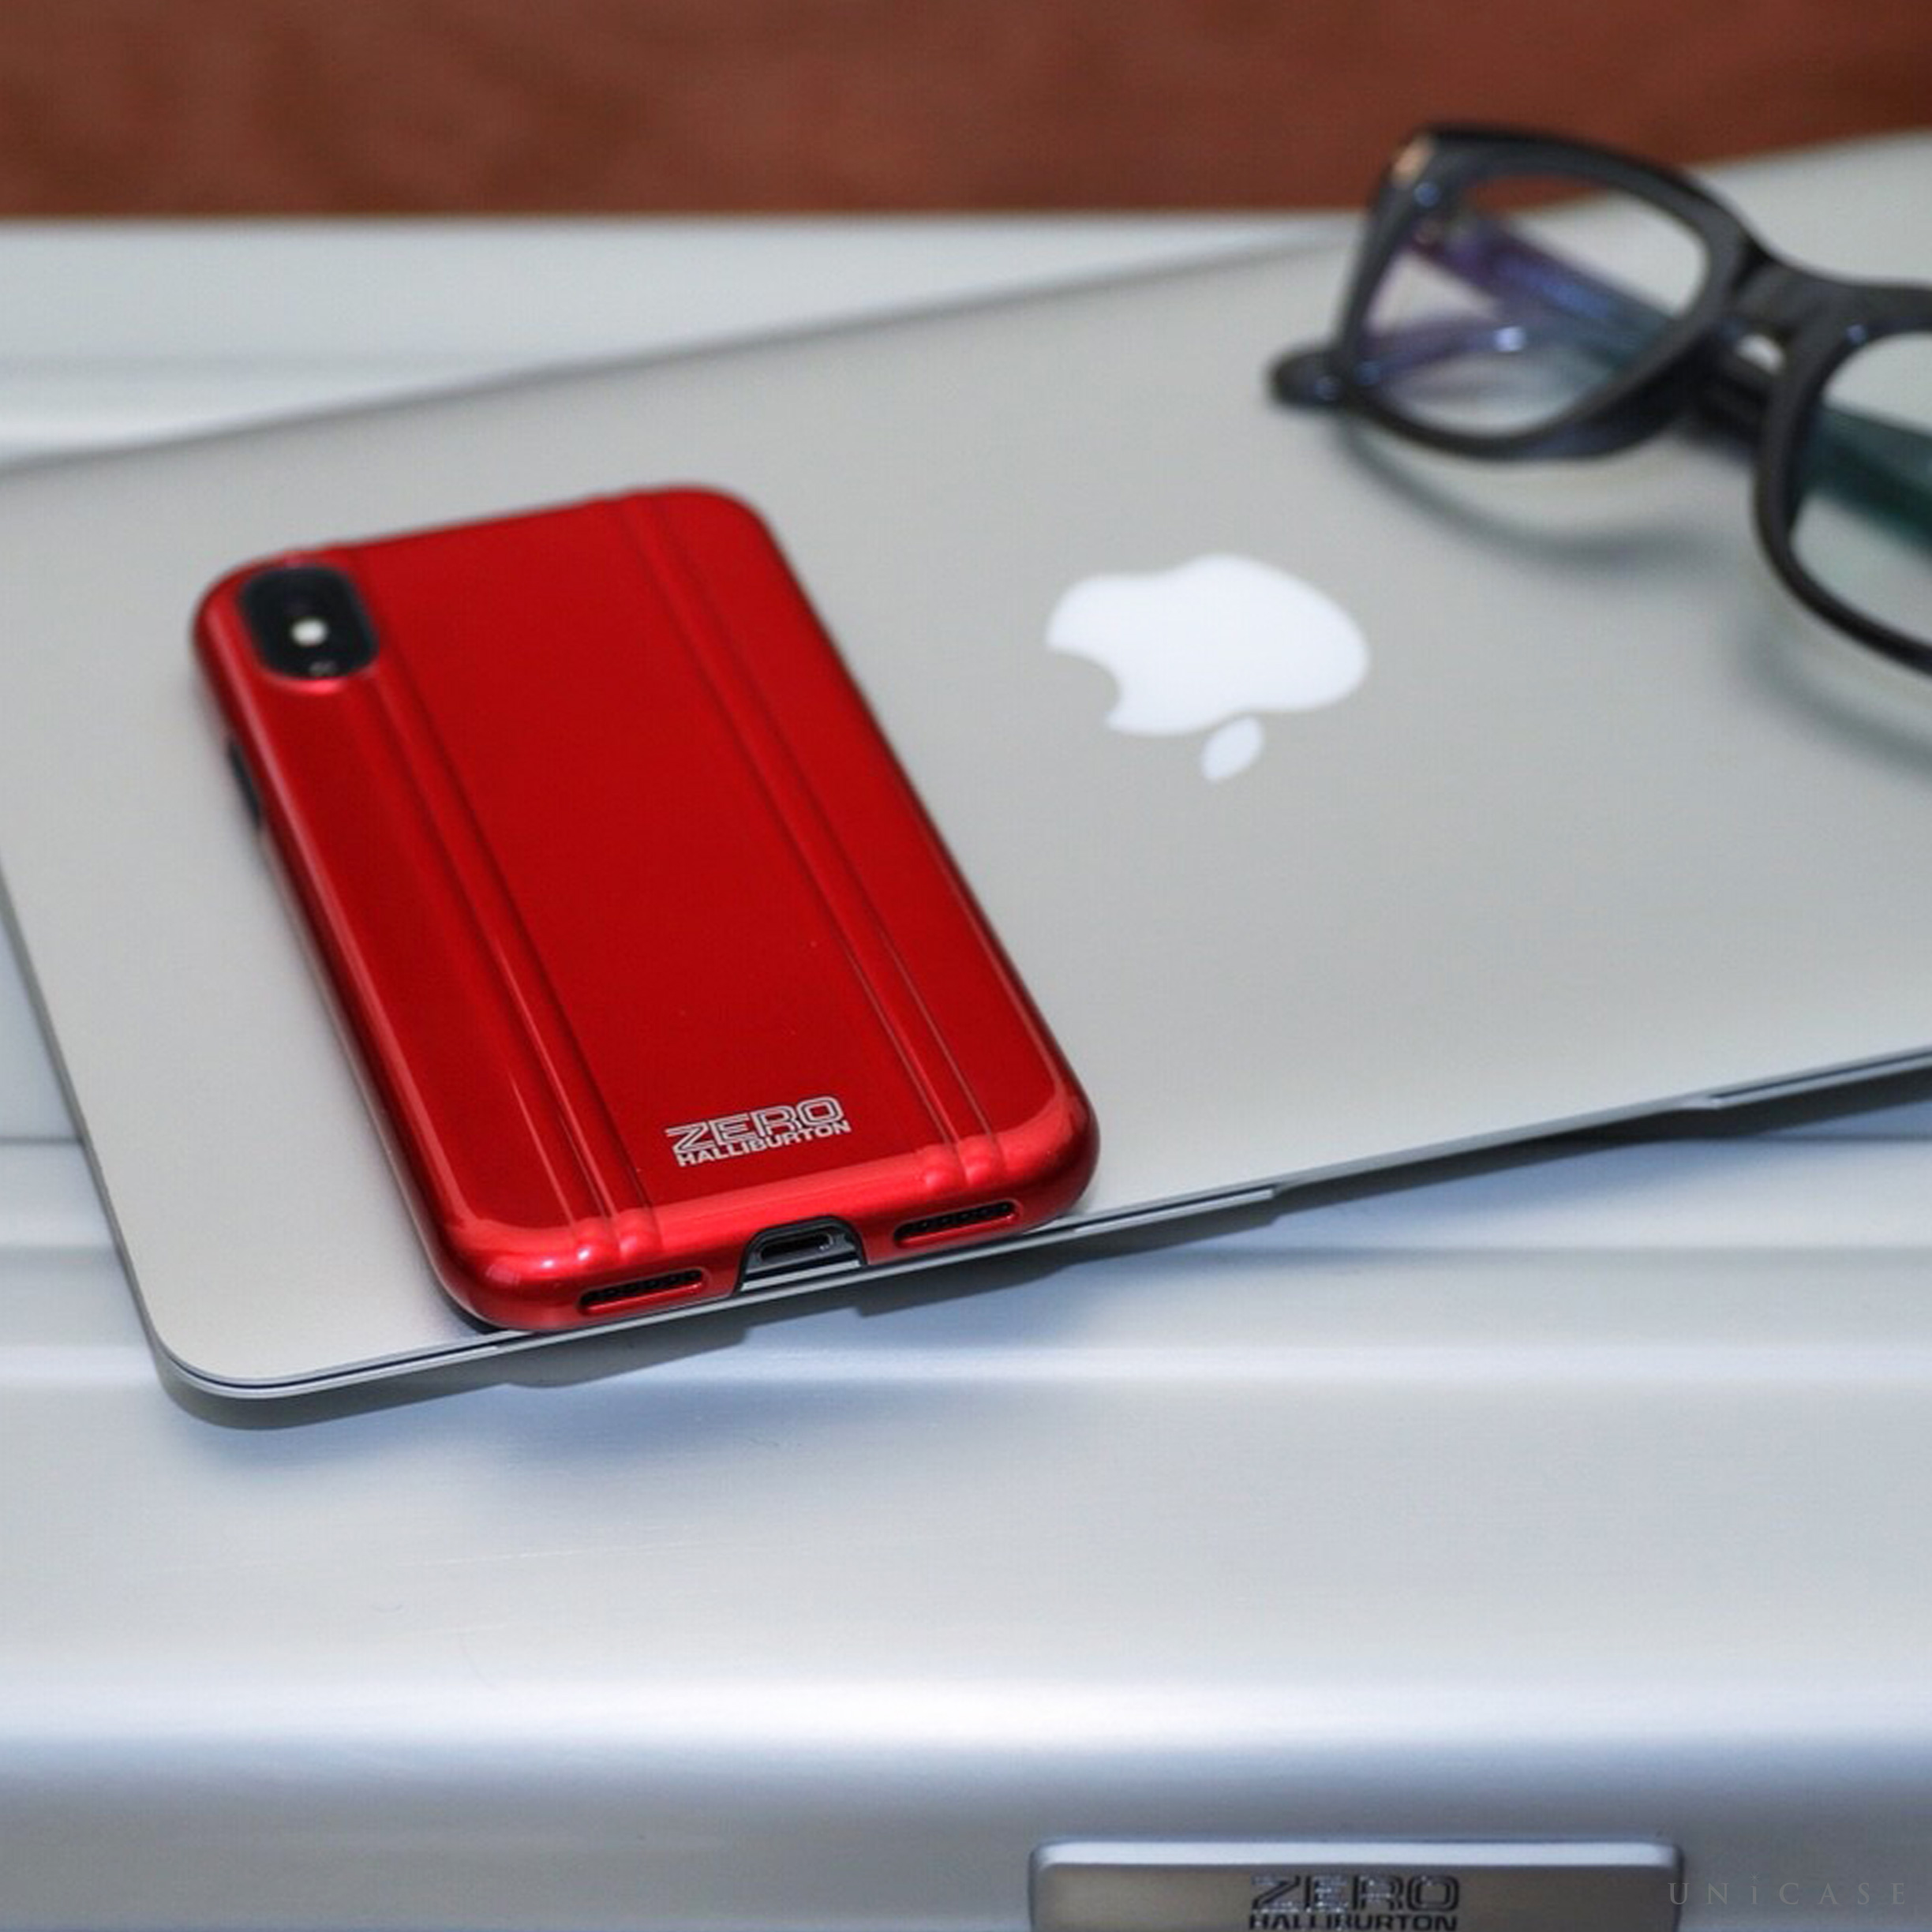 【iPhoneX ケース】ZERO HALLIBURTON Shockproof case for iPhone X レッド 詳細画像